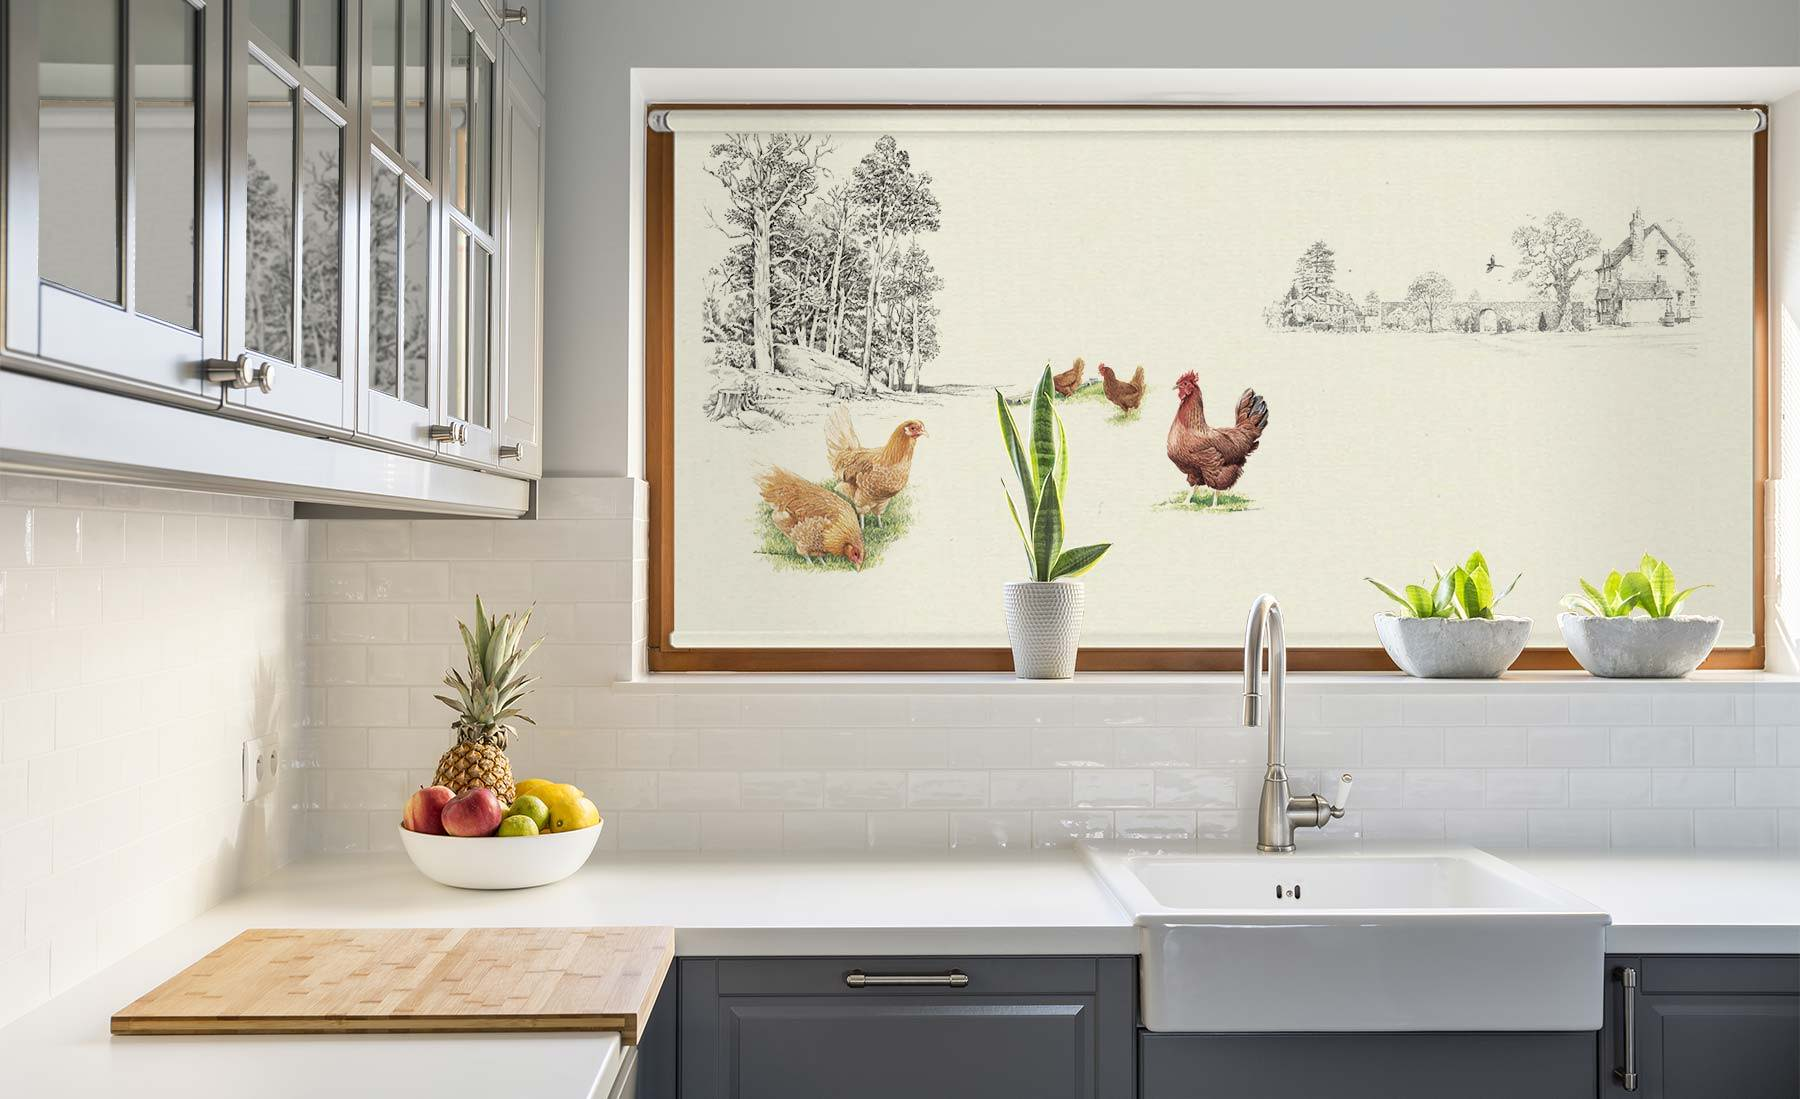 Custom-made, countryside artwork blinds, hanging in a kitchen